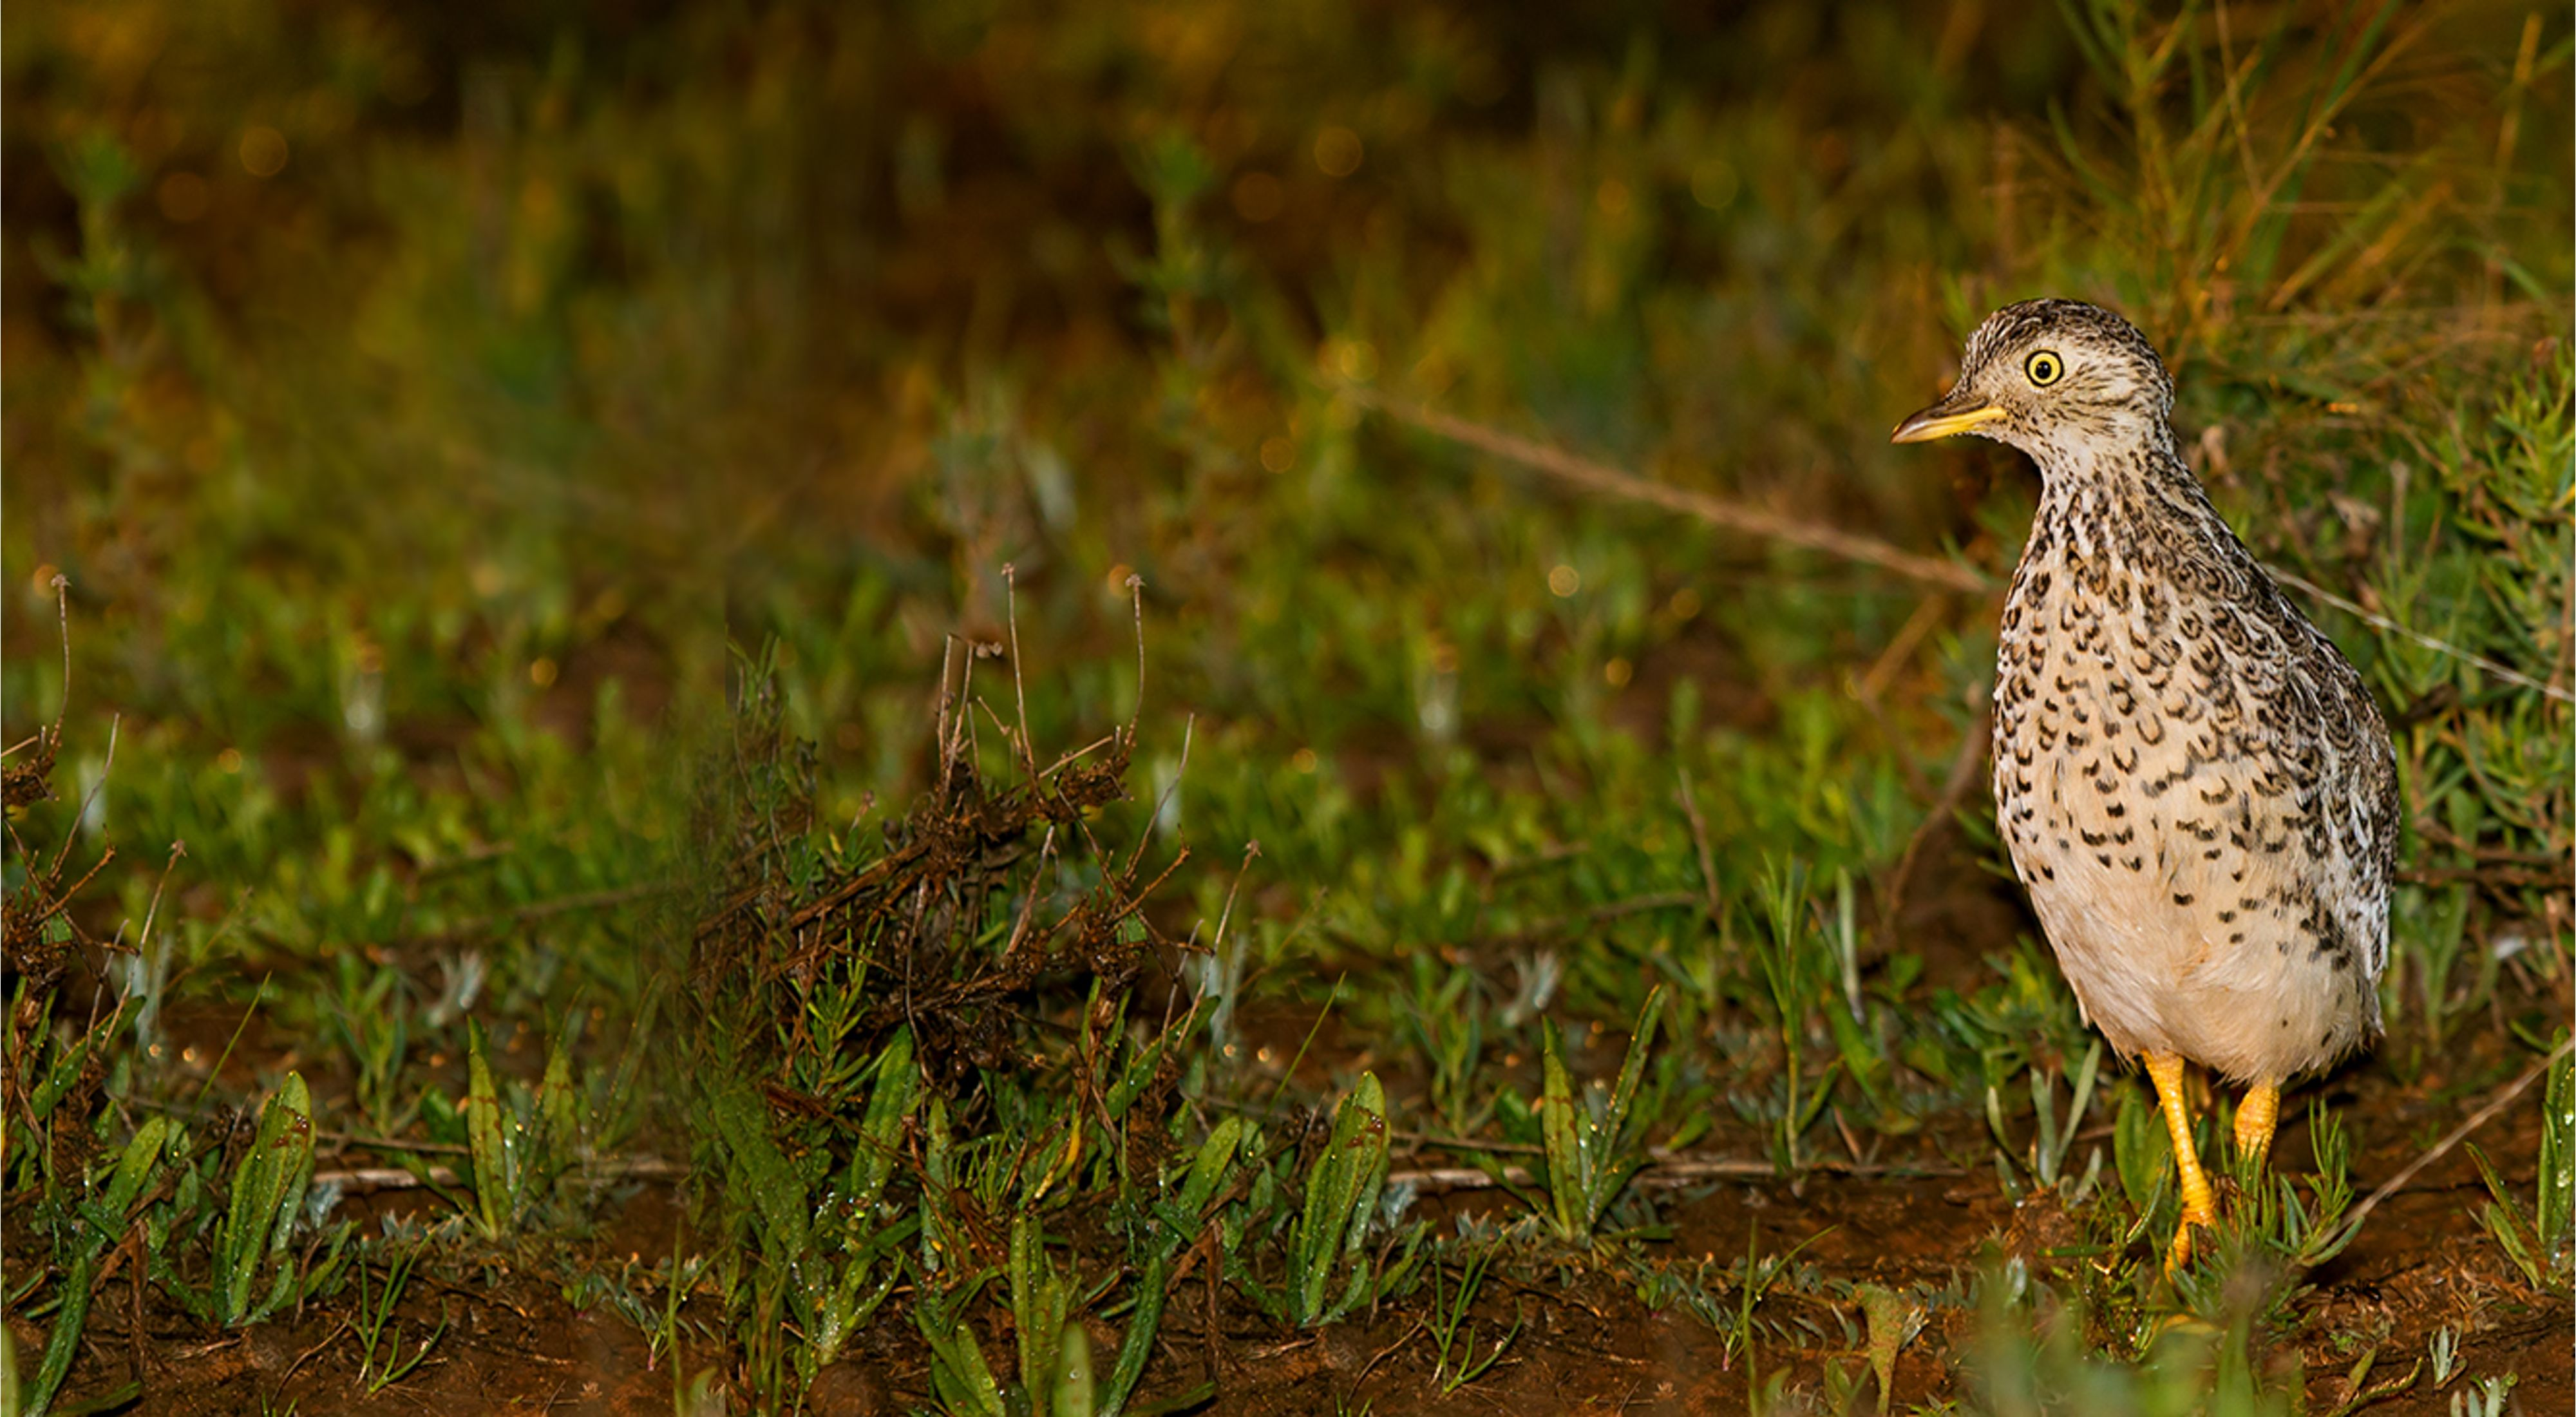 is a critically endangered quail-like bird found in the Riverina region of NSW